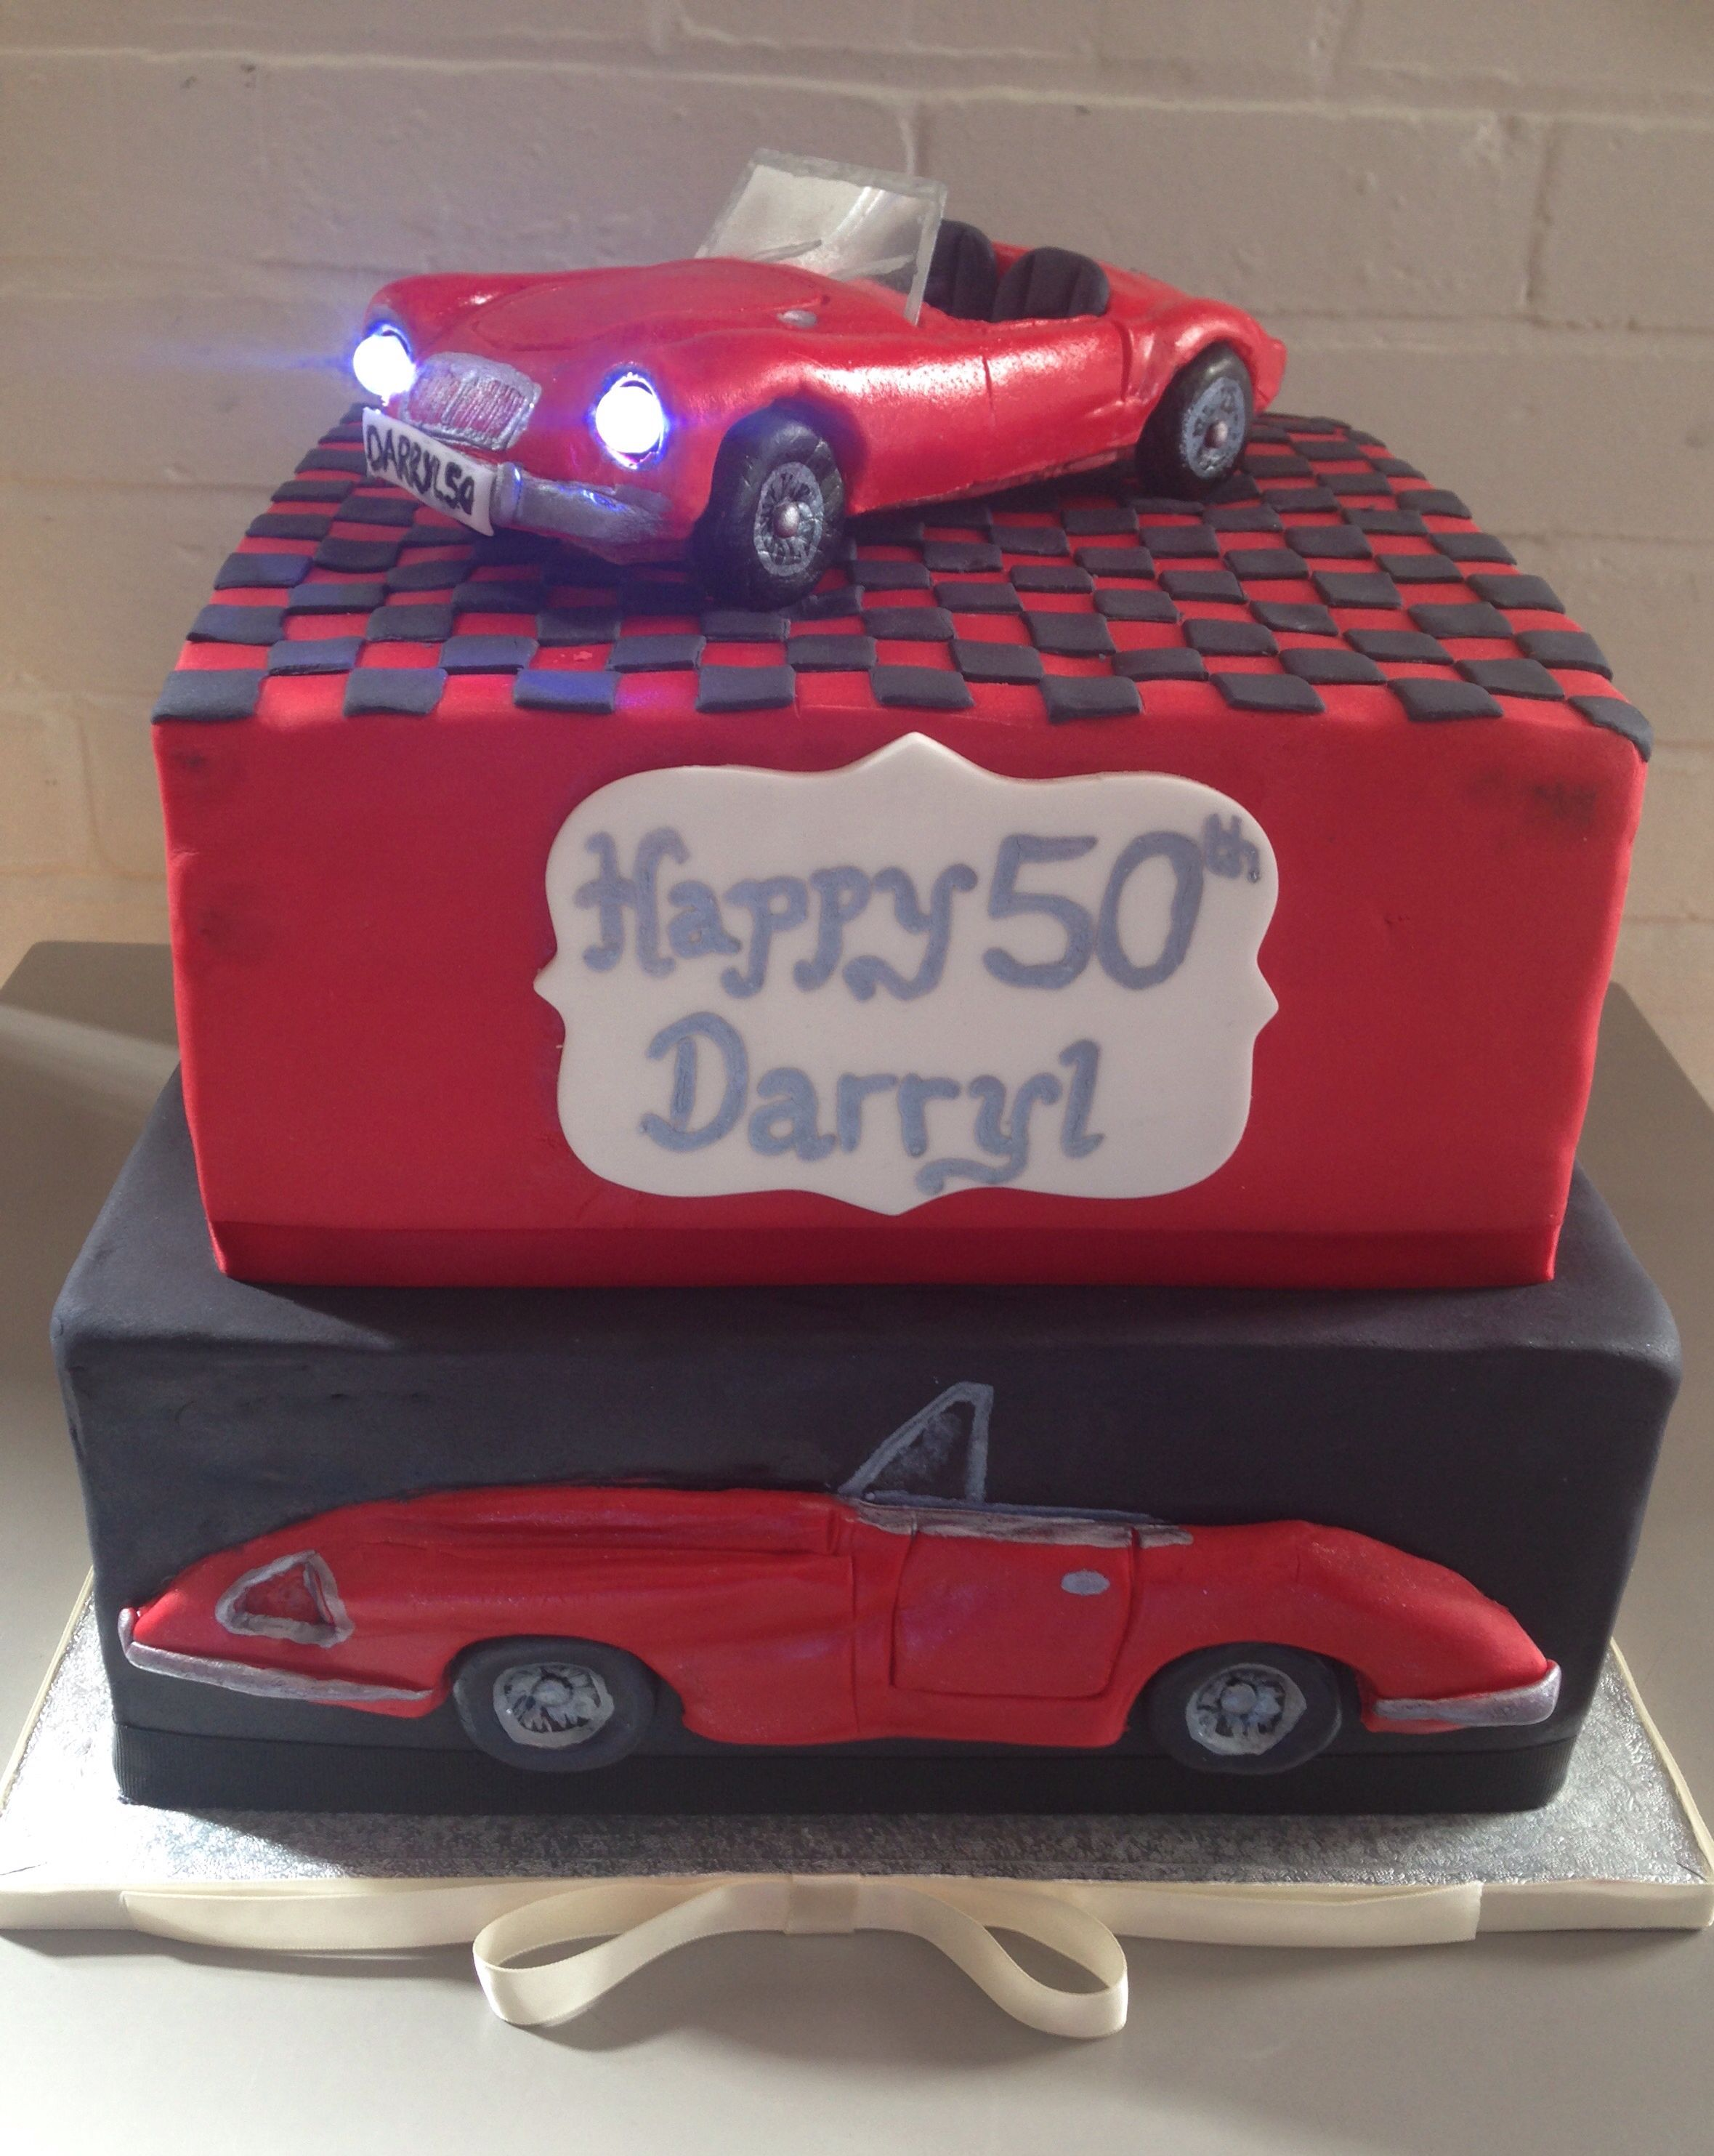 Classic Car Cake With Images Cars Birthday Cake 50th Birthday